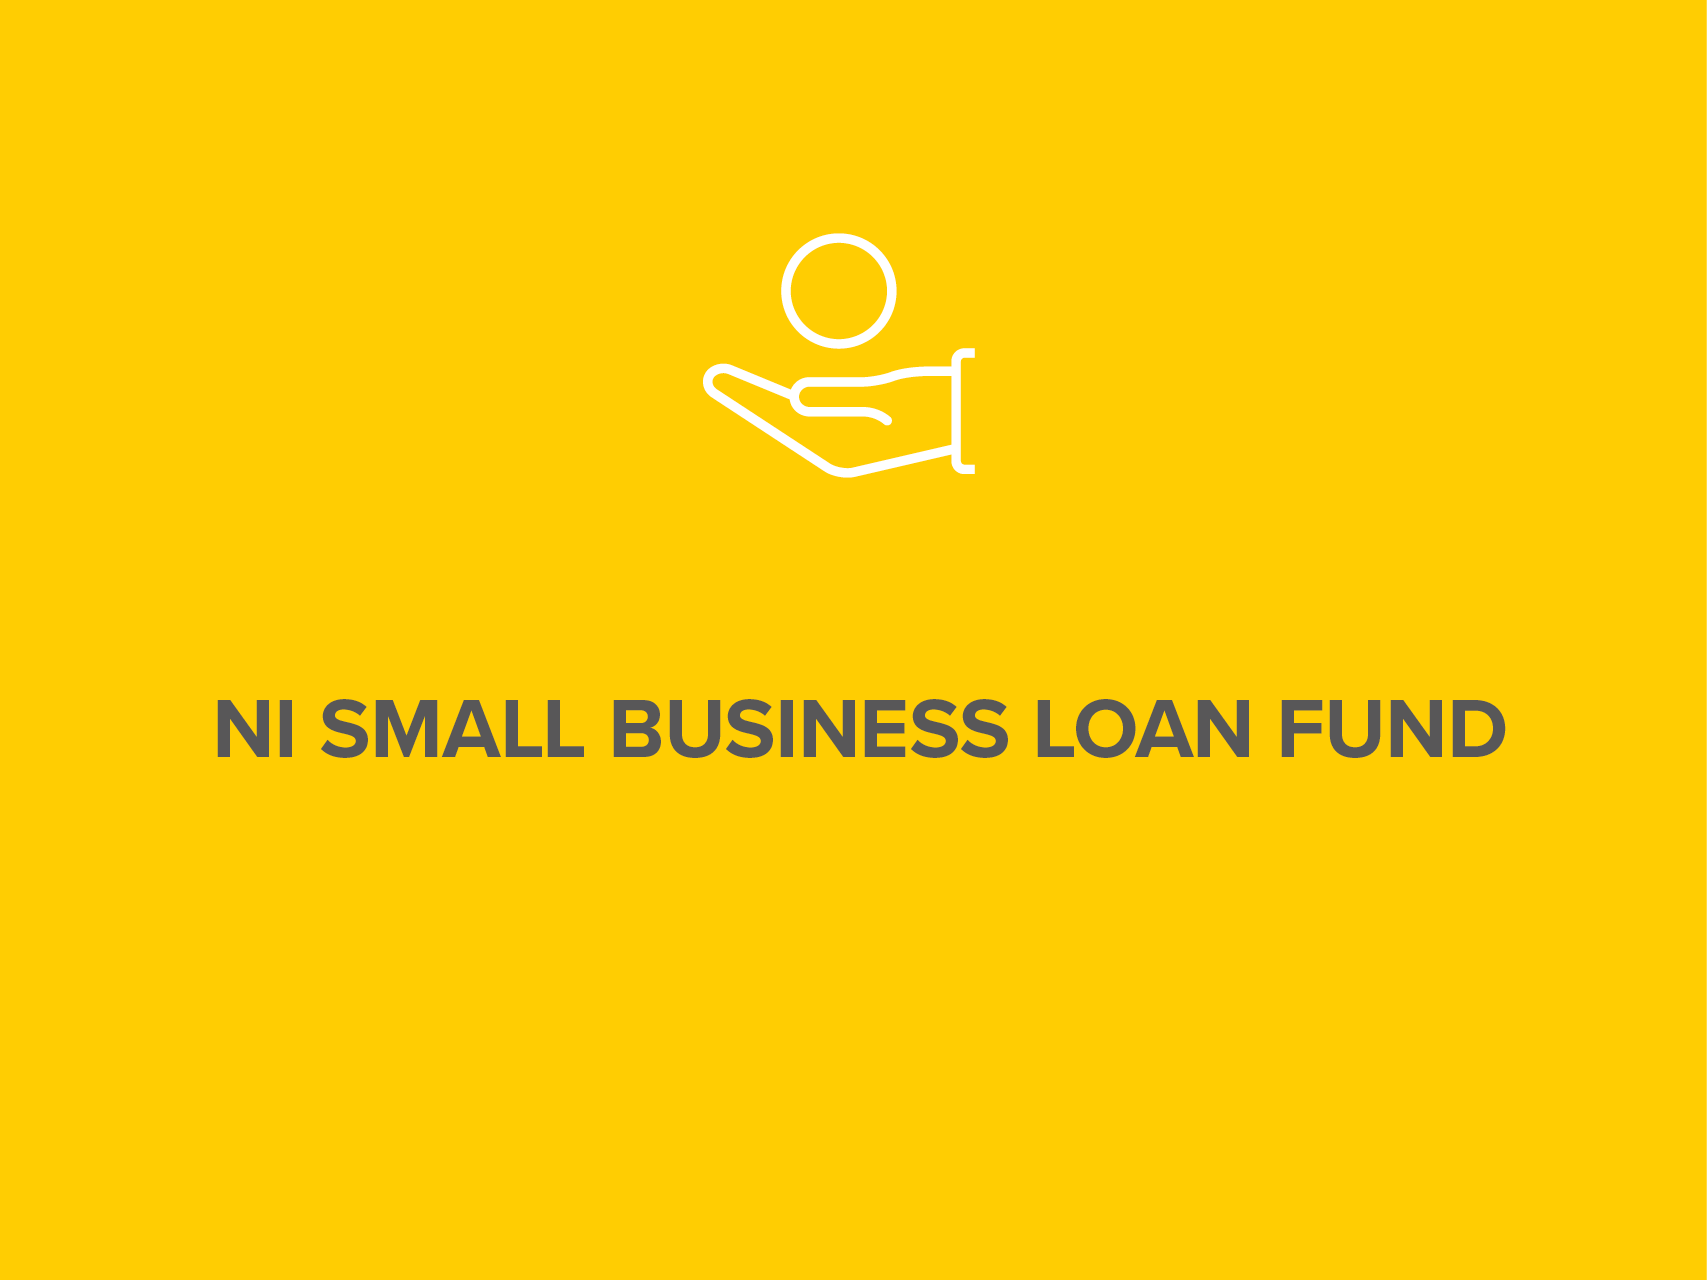 Northern Ireland Small Business Fund